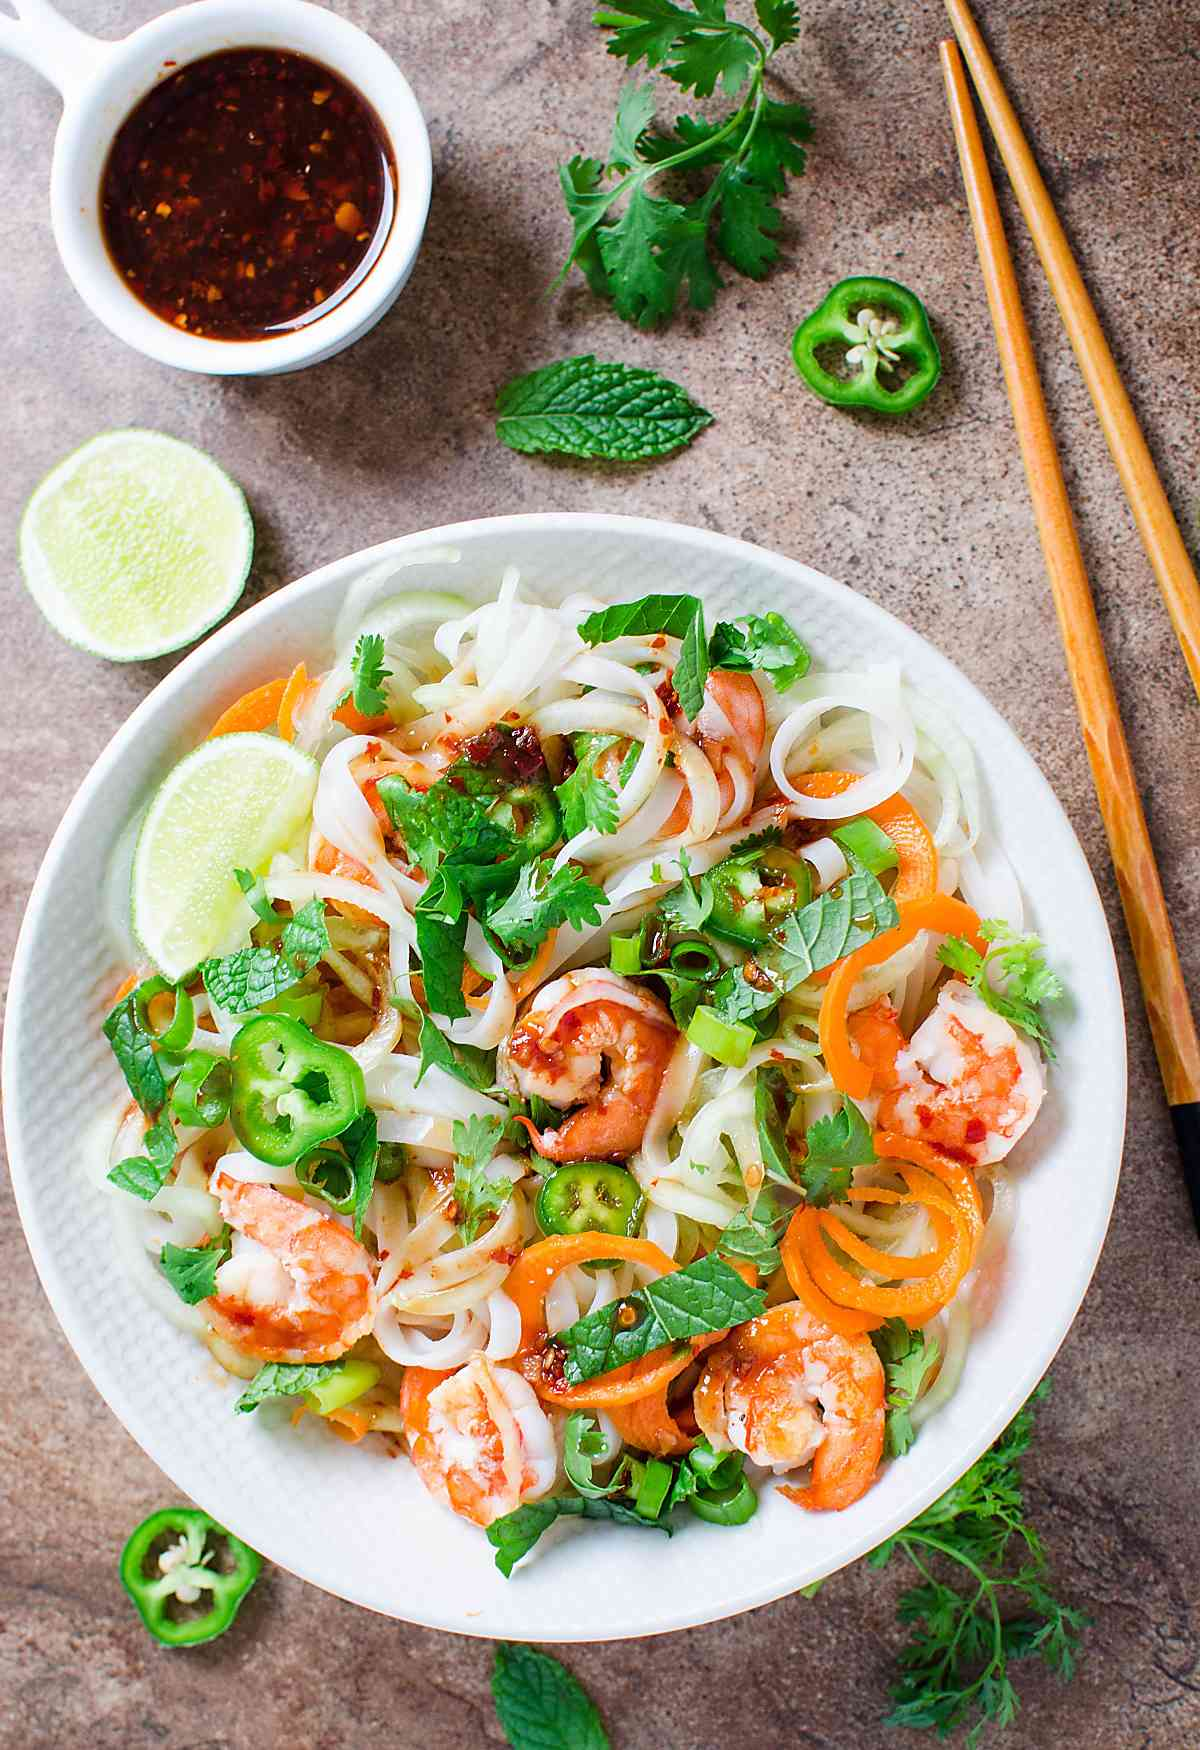 This Vietnamese Summer Roll Salad Bowl is a perfect alternative to wrapping Vietnamese summer rolls in rice paper wraps.